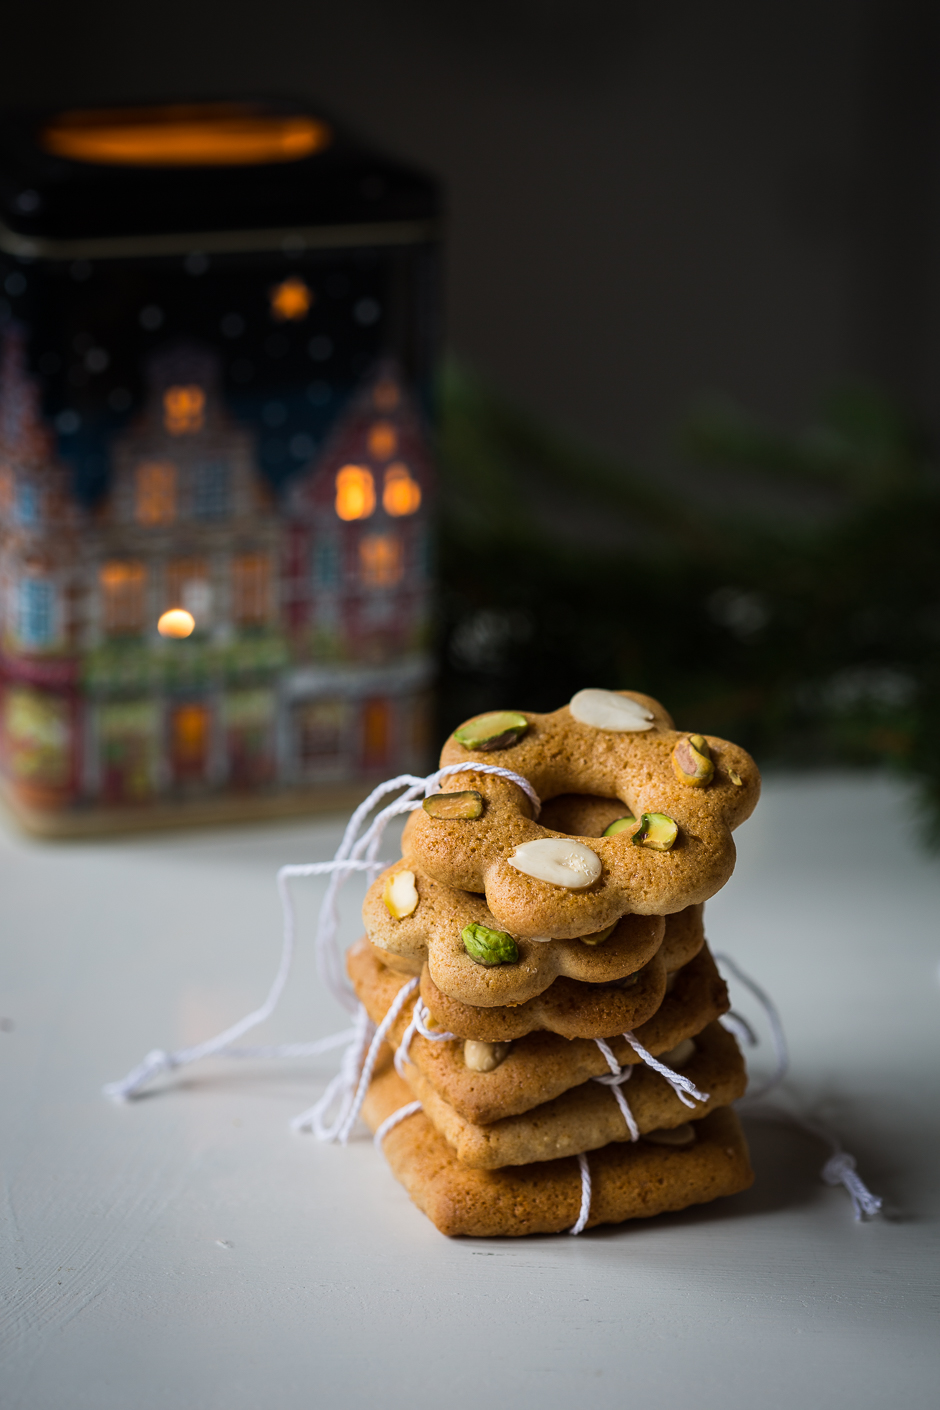 edible Christmas ornaments- gingerbread cookies from the Taste of Memories Hungarian country kitchen www.tasteofmemories.com